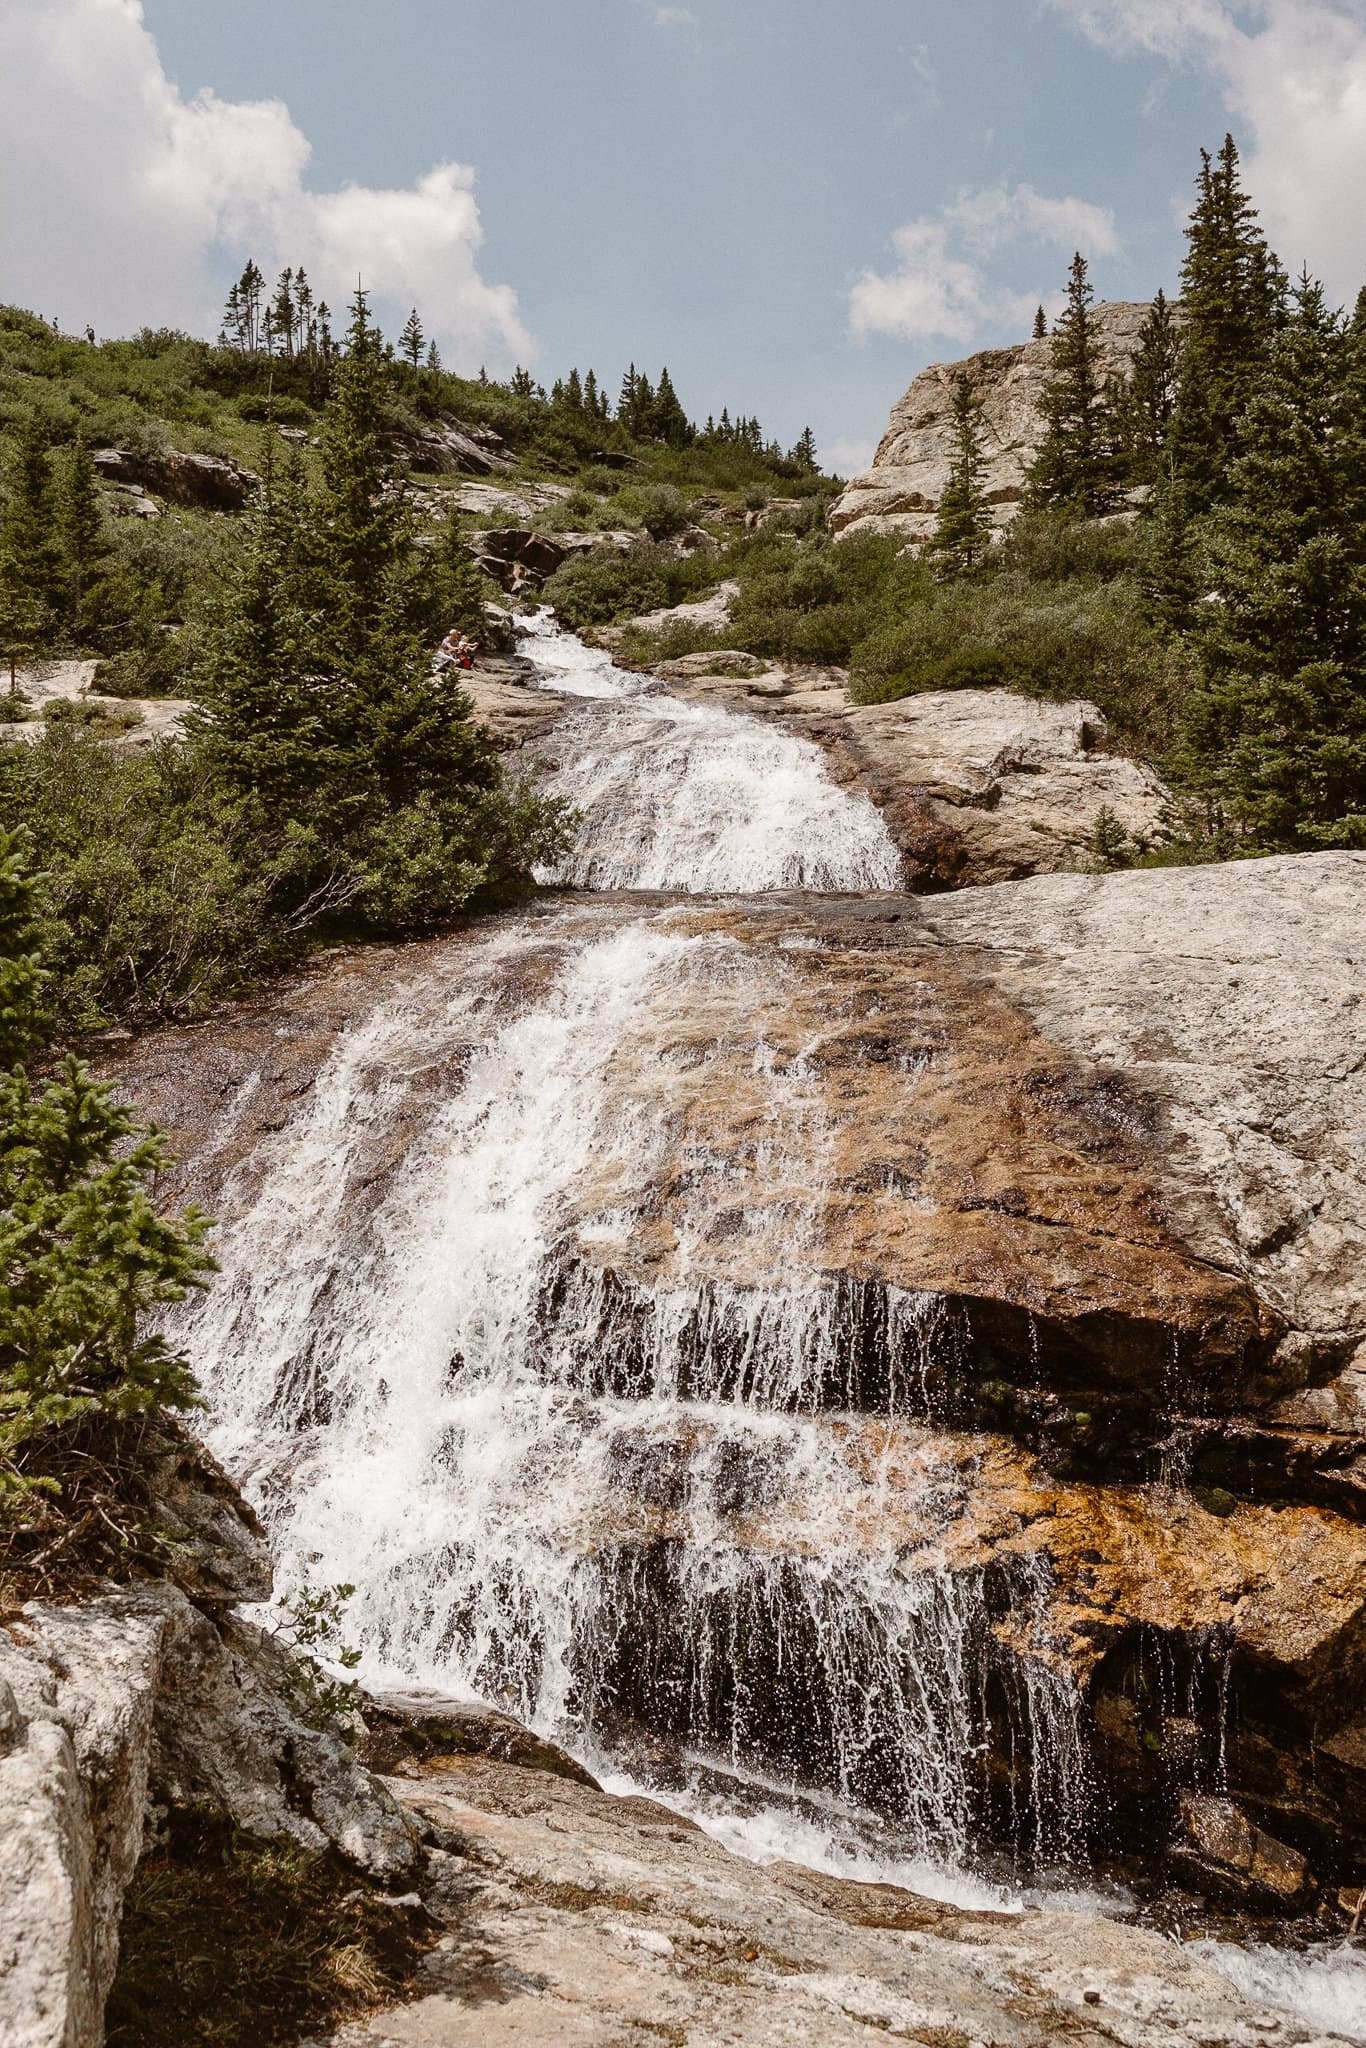 Breckenridge Elopement Locations, Colorado adventure wedding photographer, waterfall